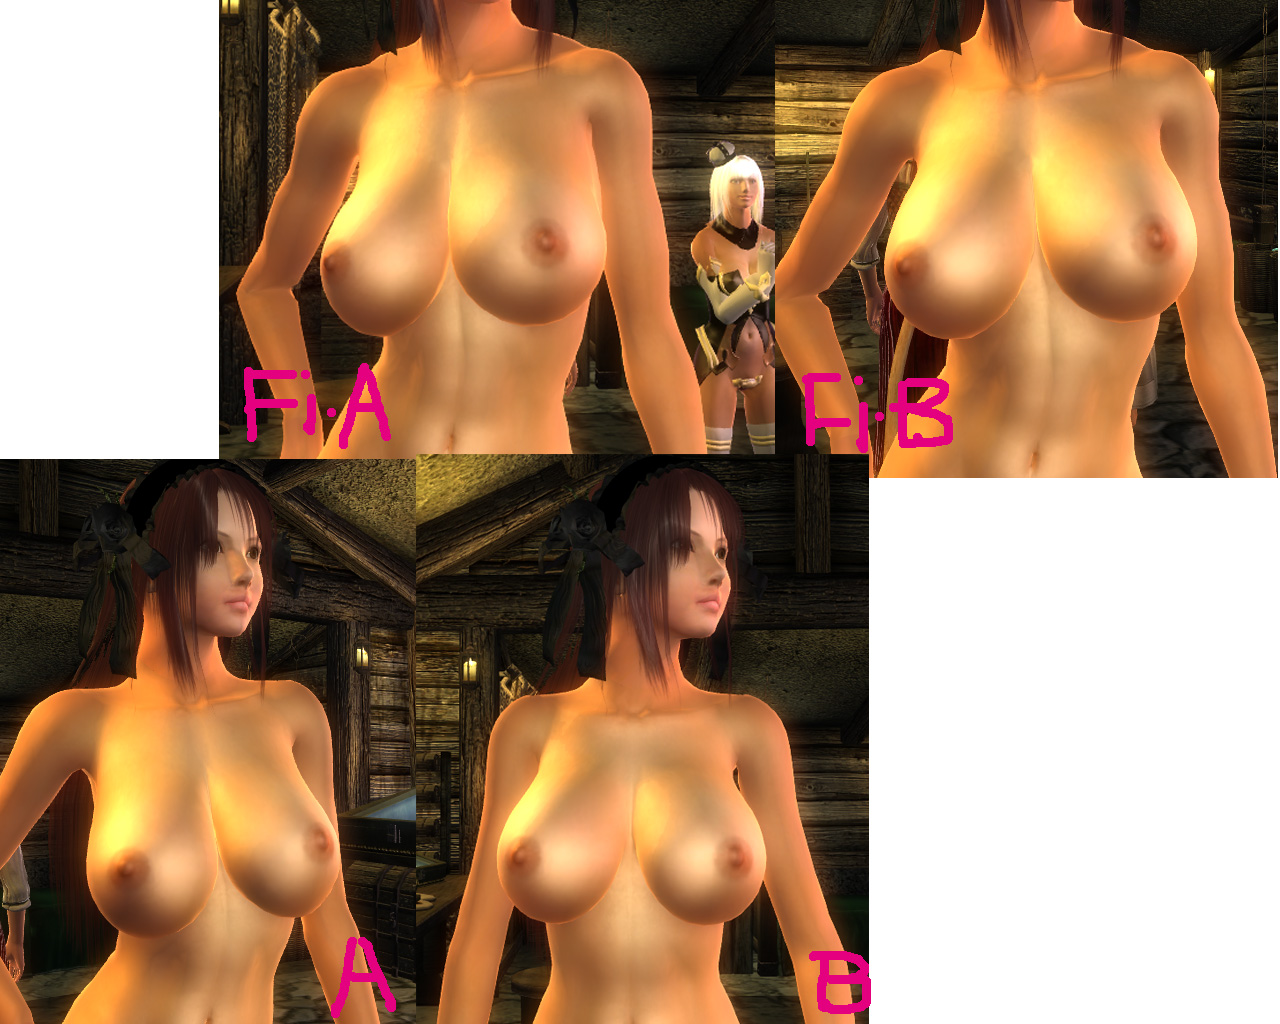 Male nude mods for oblivion pc game erotic photo